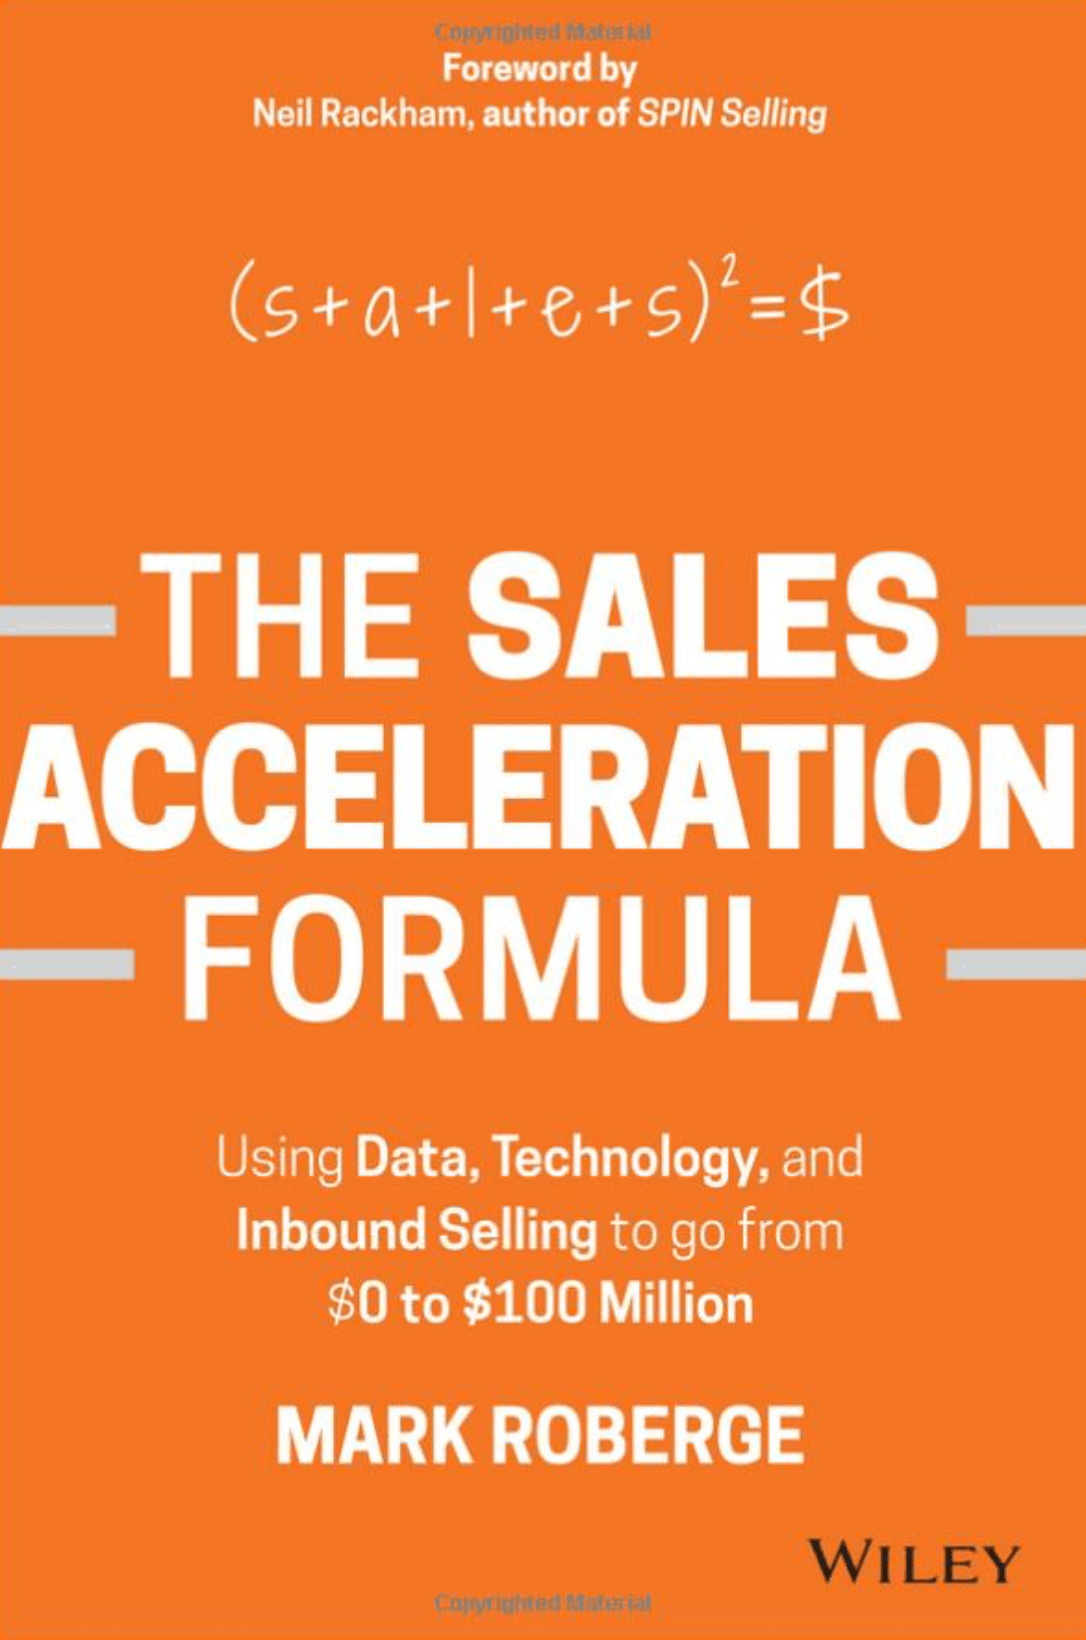 """The Sales Acceleration Formula: Using Data, Technology, and Inbound Selling to go from $0 to $100 Million"" by Mark Roberge_Saleslabel.com"